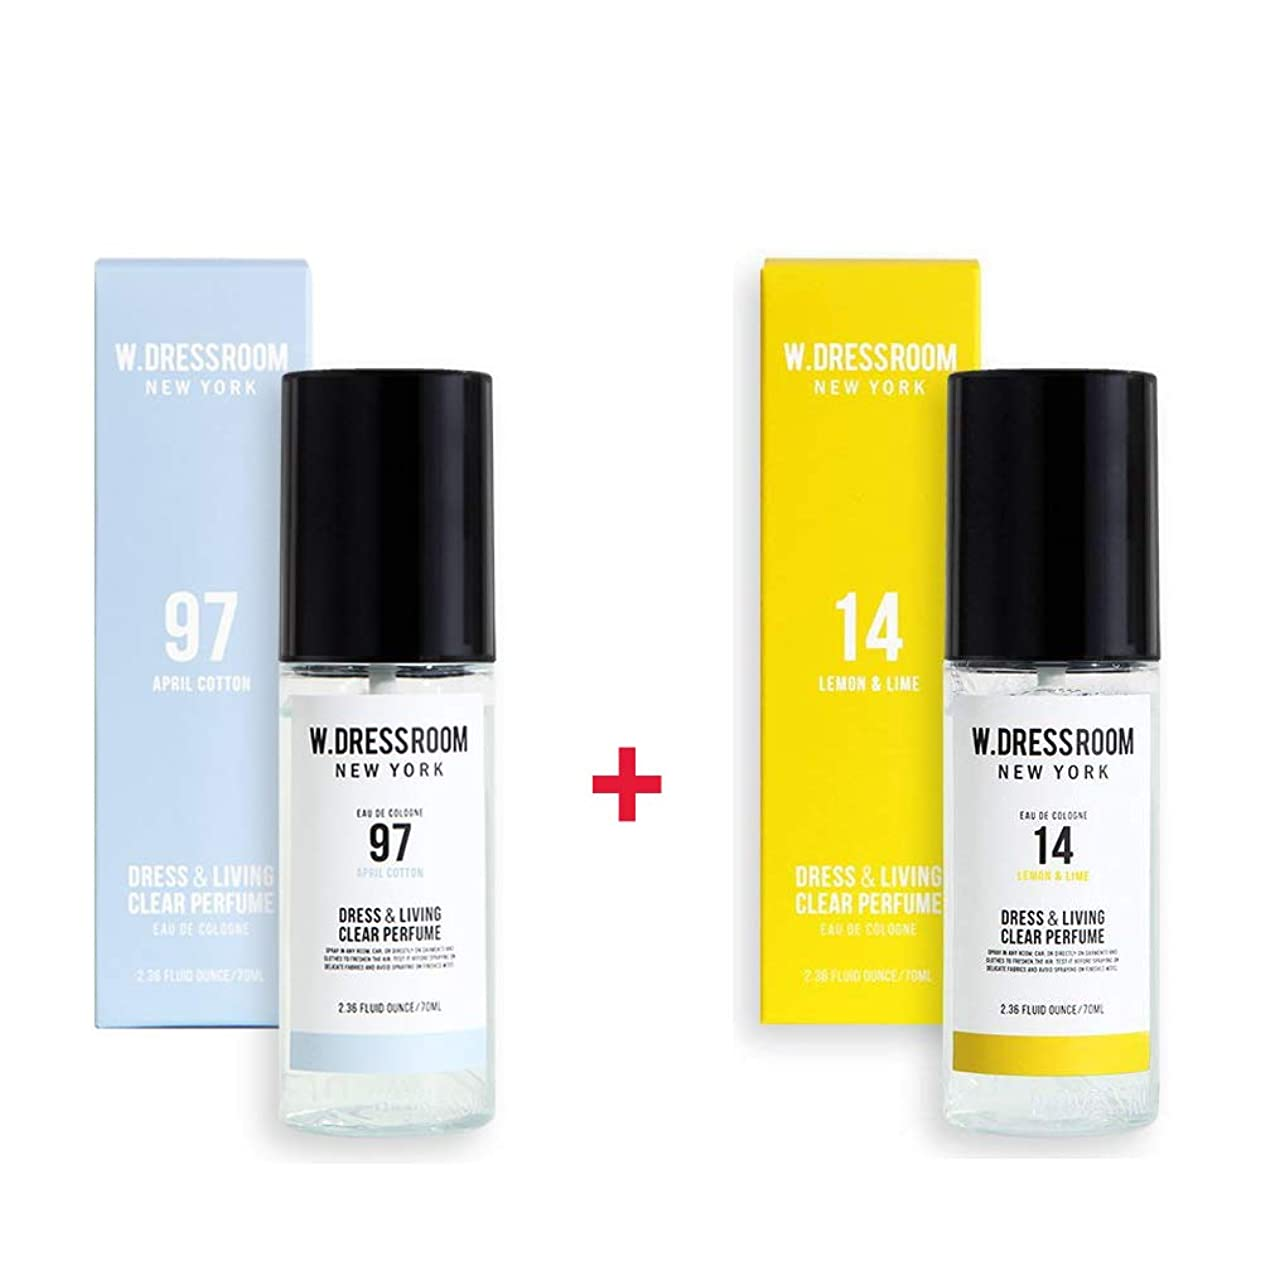 ダイアクリティカル閉じる計算W.DRESSROOM Dress & Living Clear Perfume 70ml (No 97 April Cotton)+(No 14 Lemon & Lime)